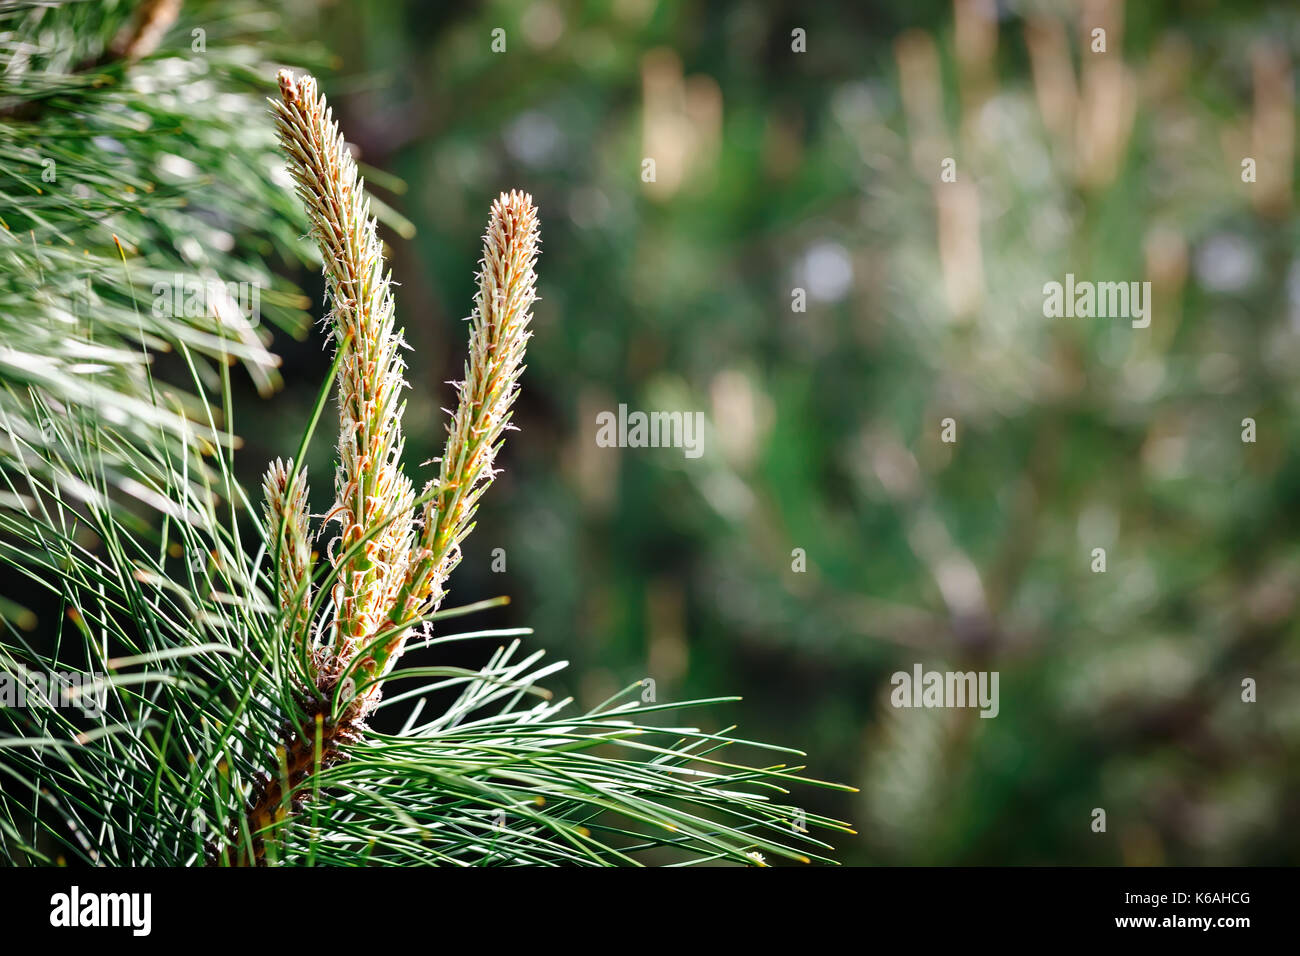 Young branches of a pine. - Stock Image